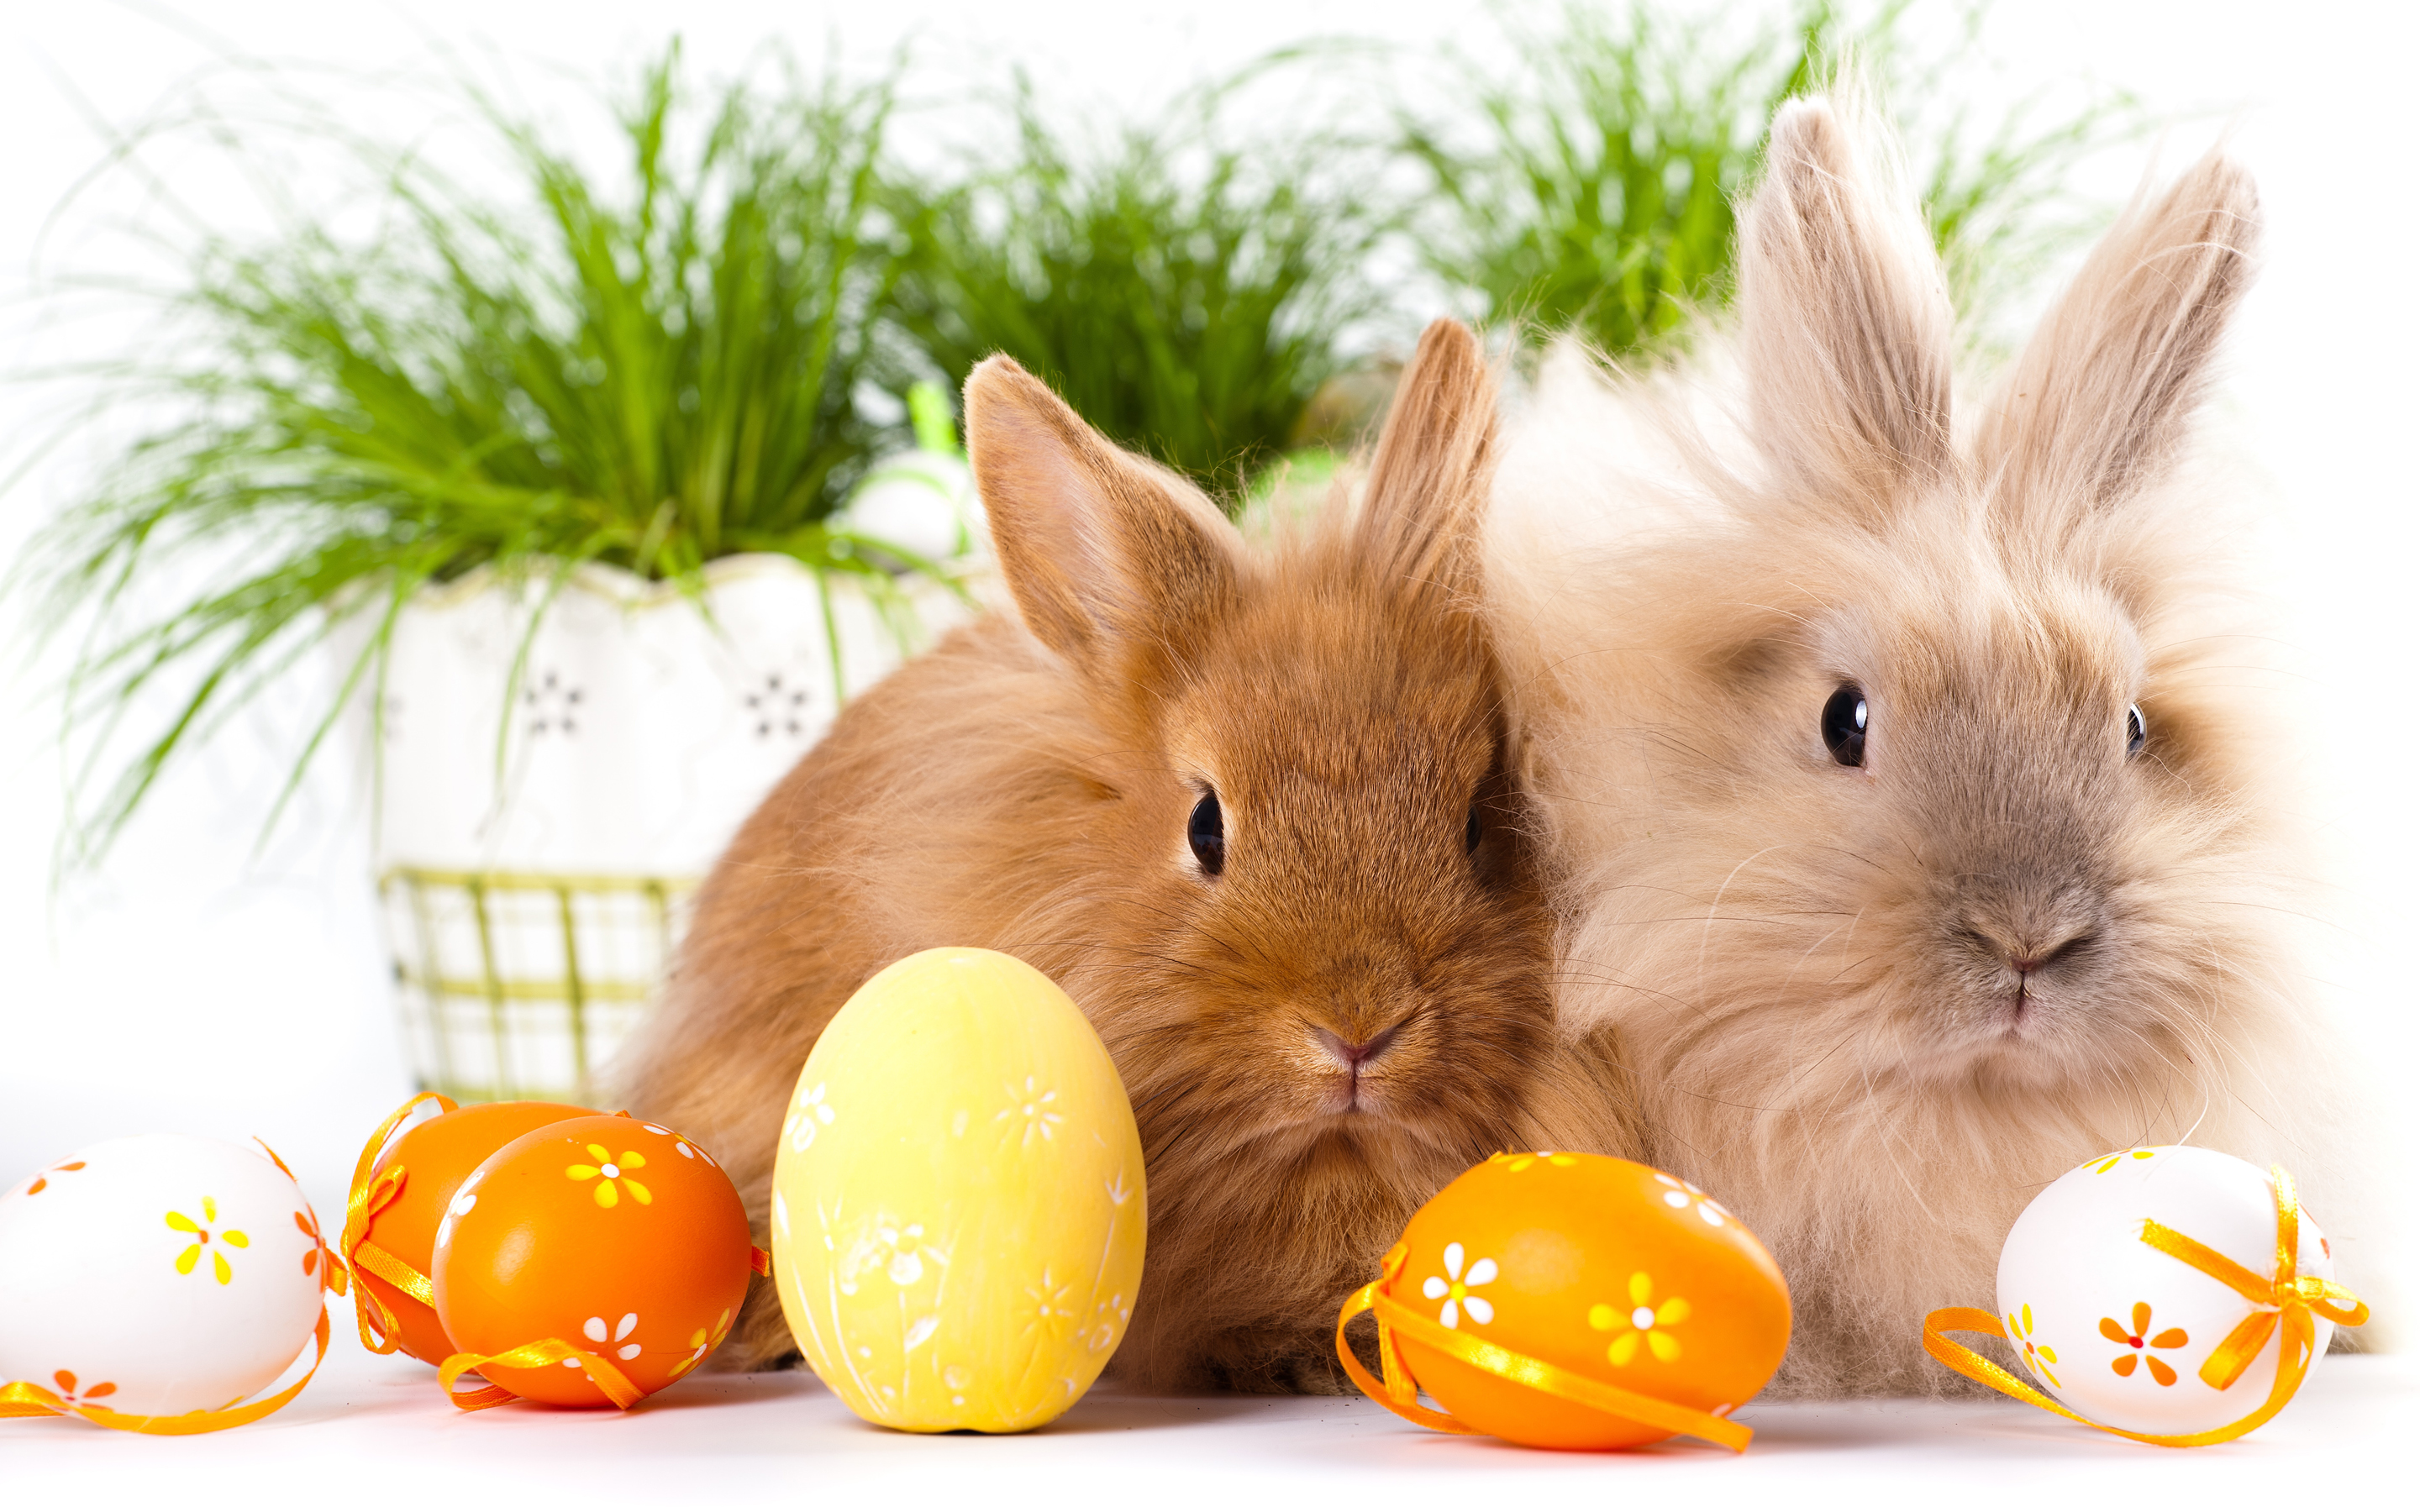 Easter Bunny Backgrounds HD Easter Images 2880x1800